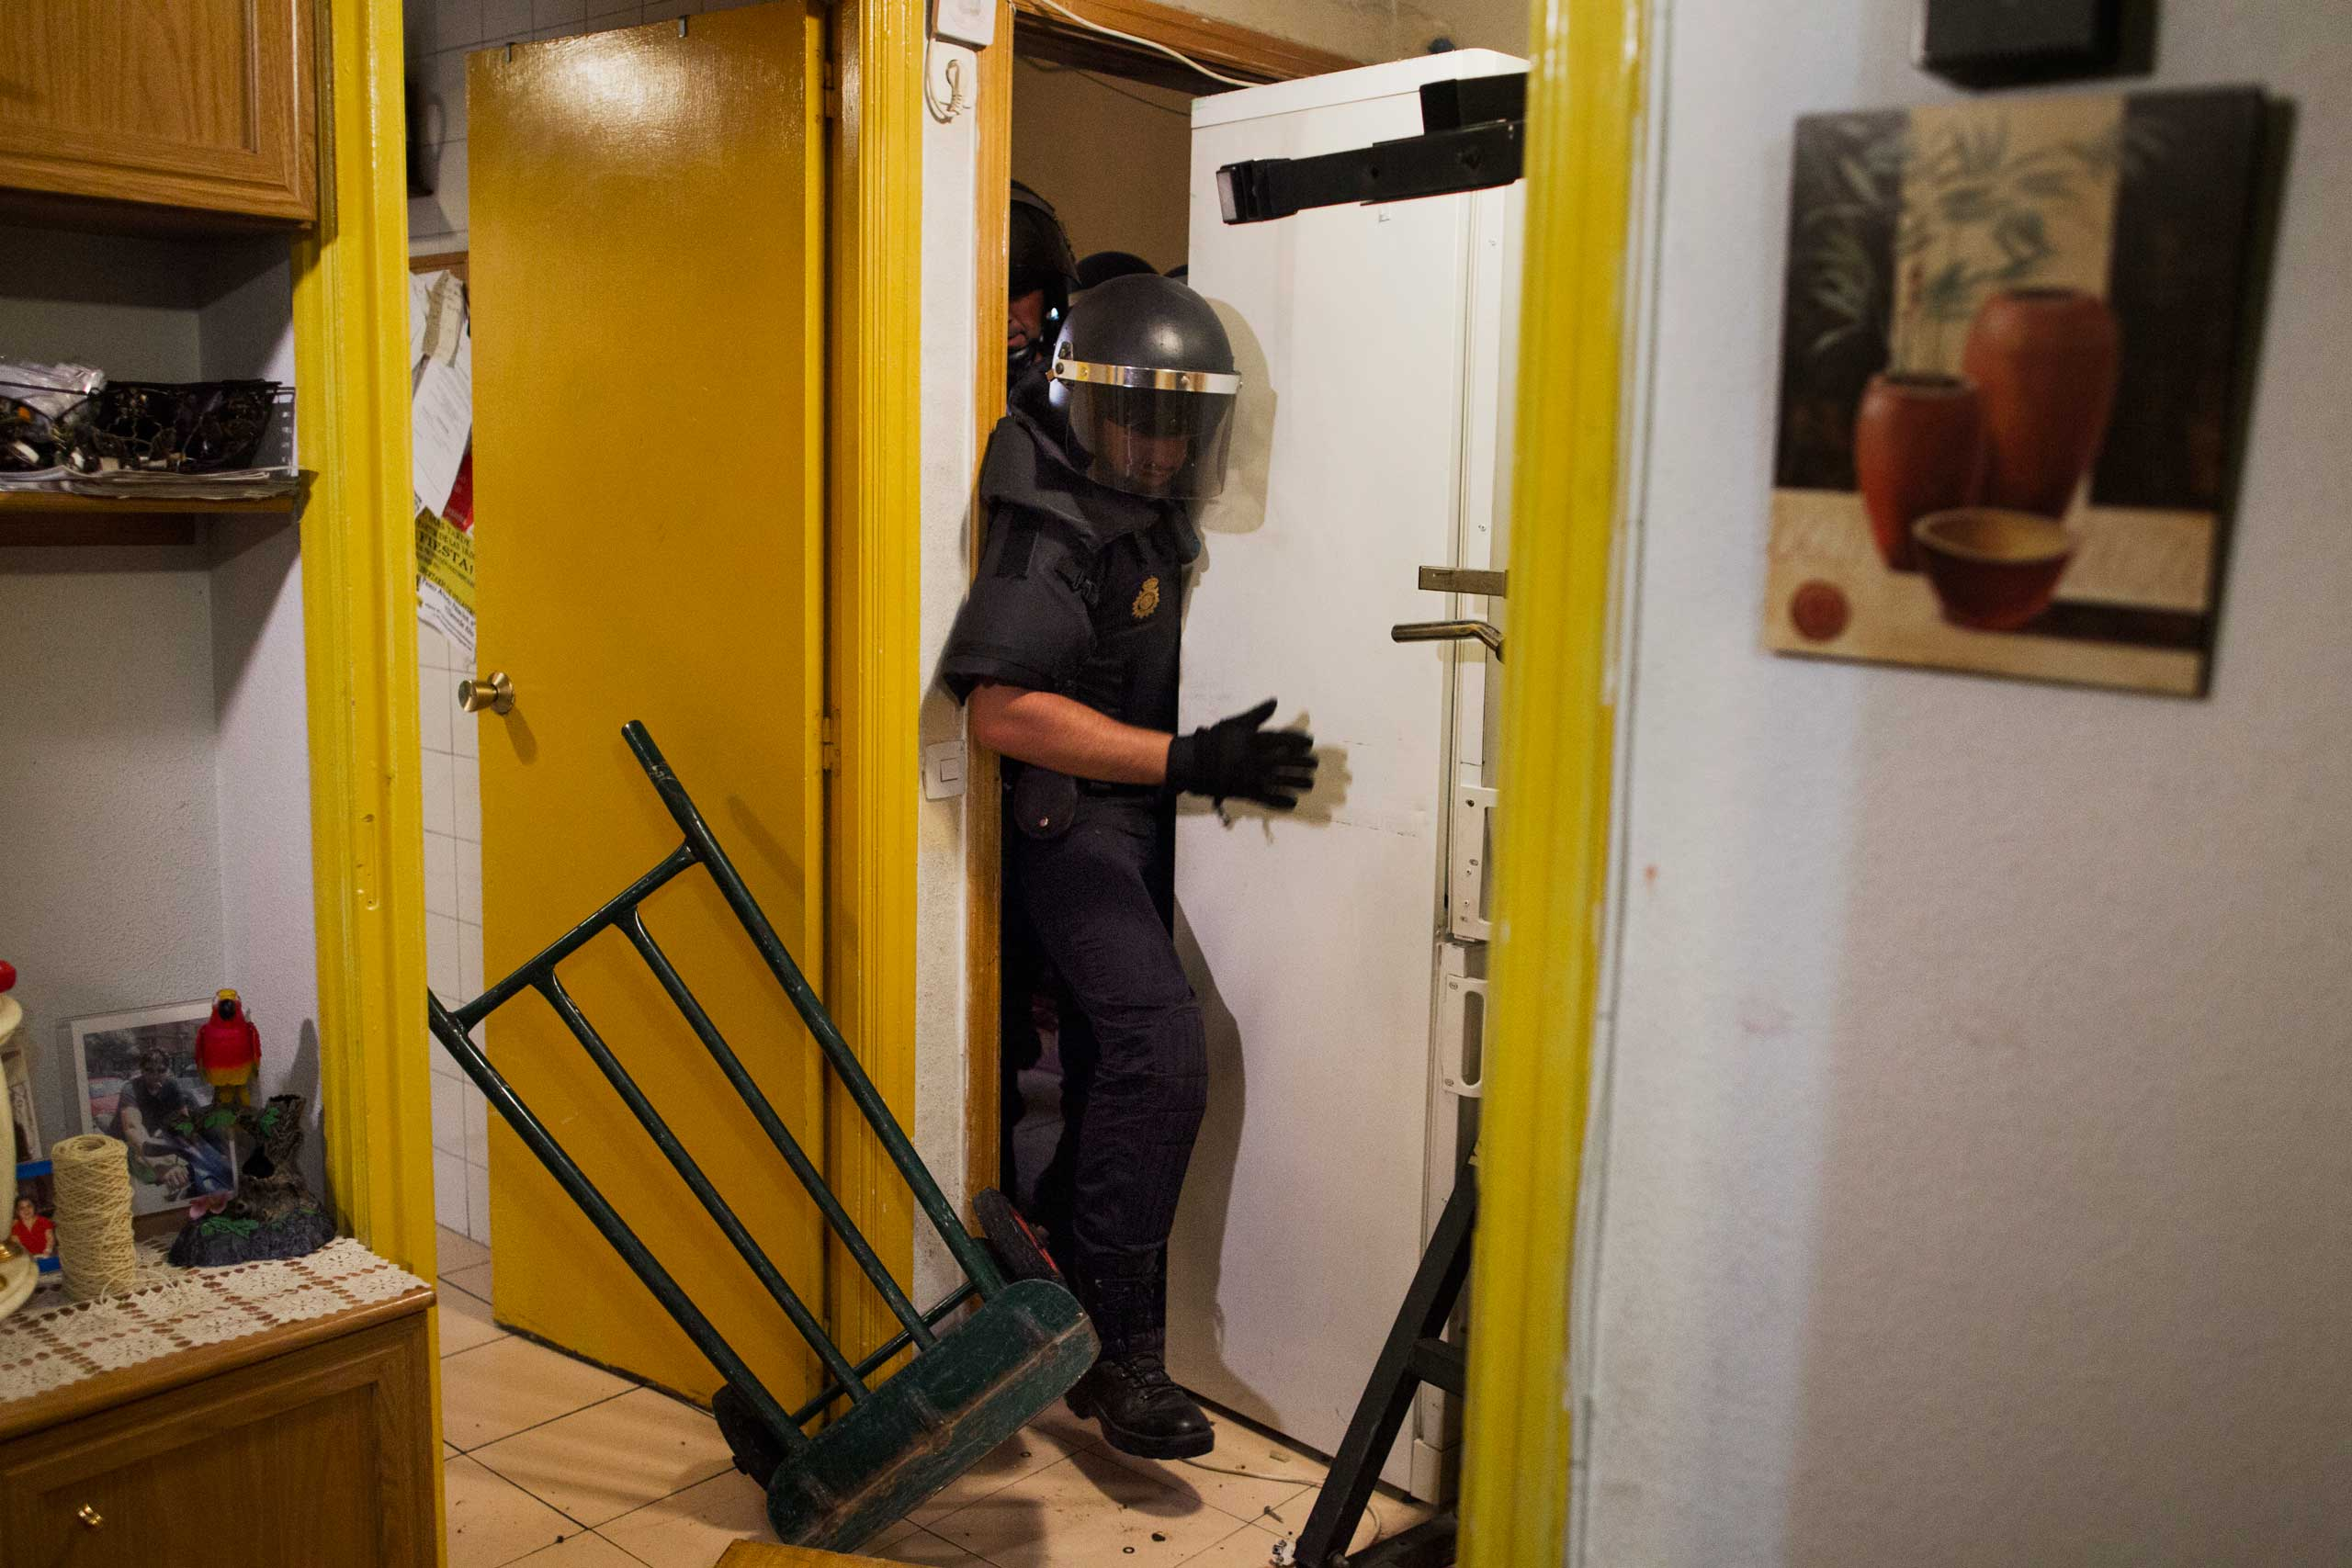 TIME LightBox: Spain's Housing CrisisPolice break into Maria Isabel Rodriguez Romero's apartment to evict her family in Madrid. Sept. 2013.